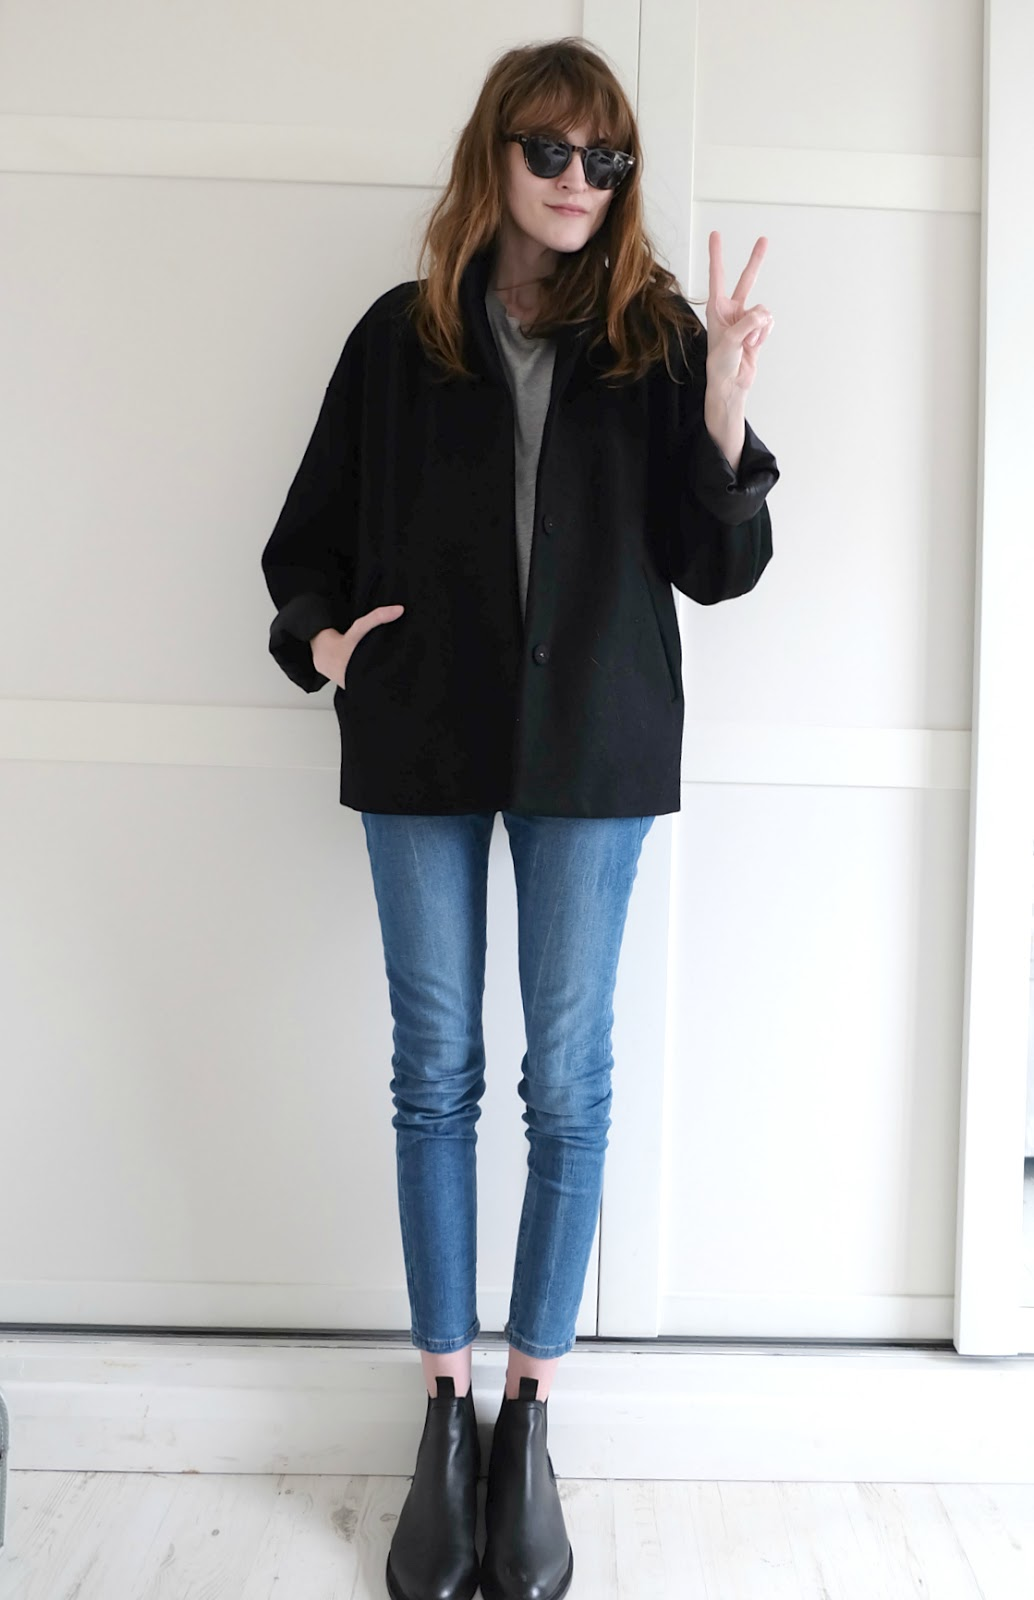 ASOS Ridley Jeans Outfit